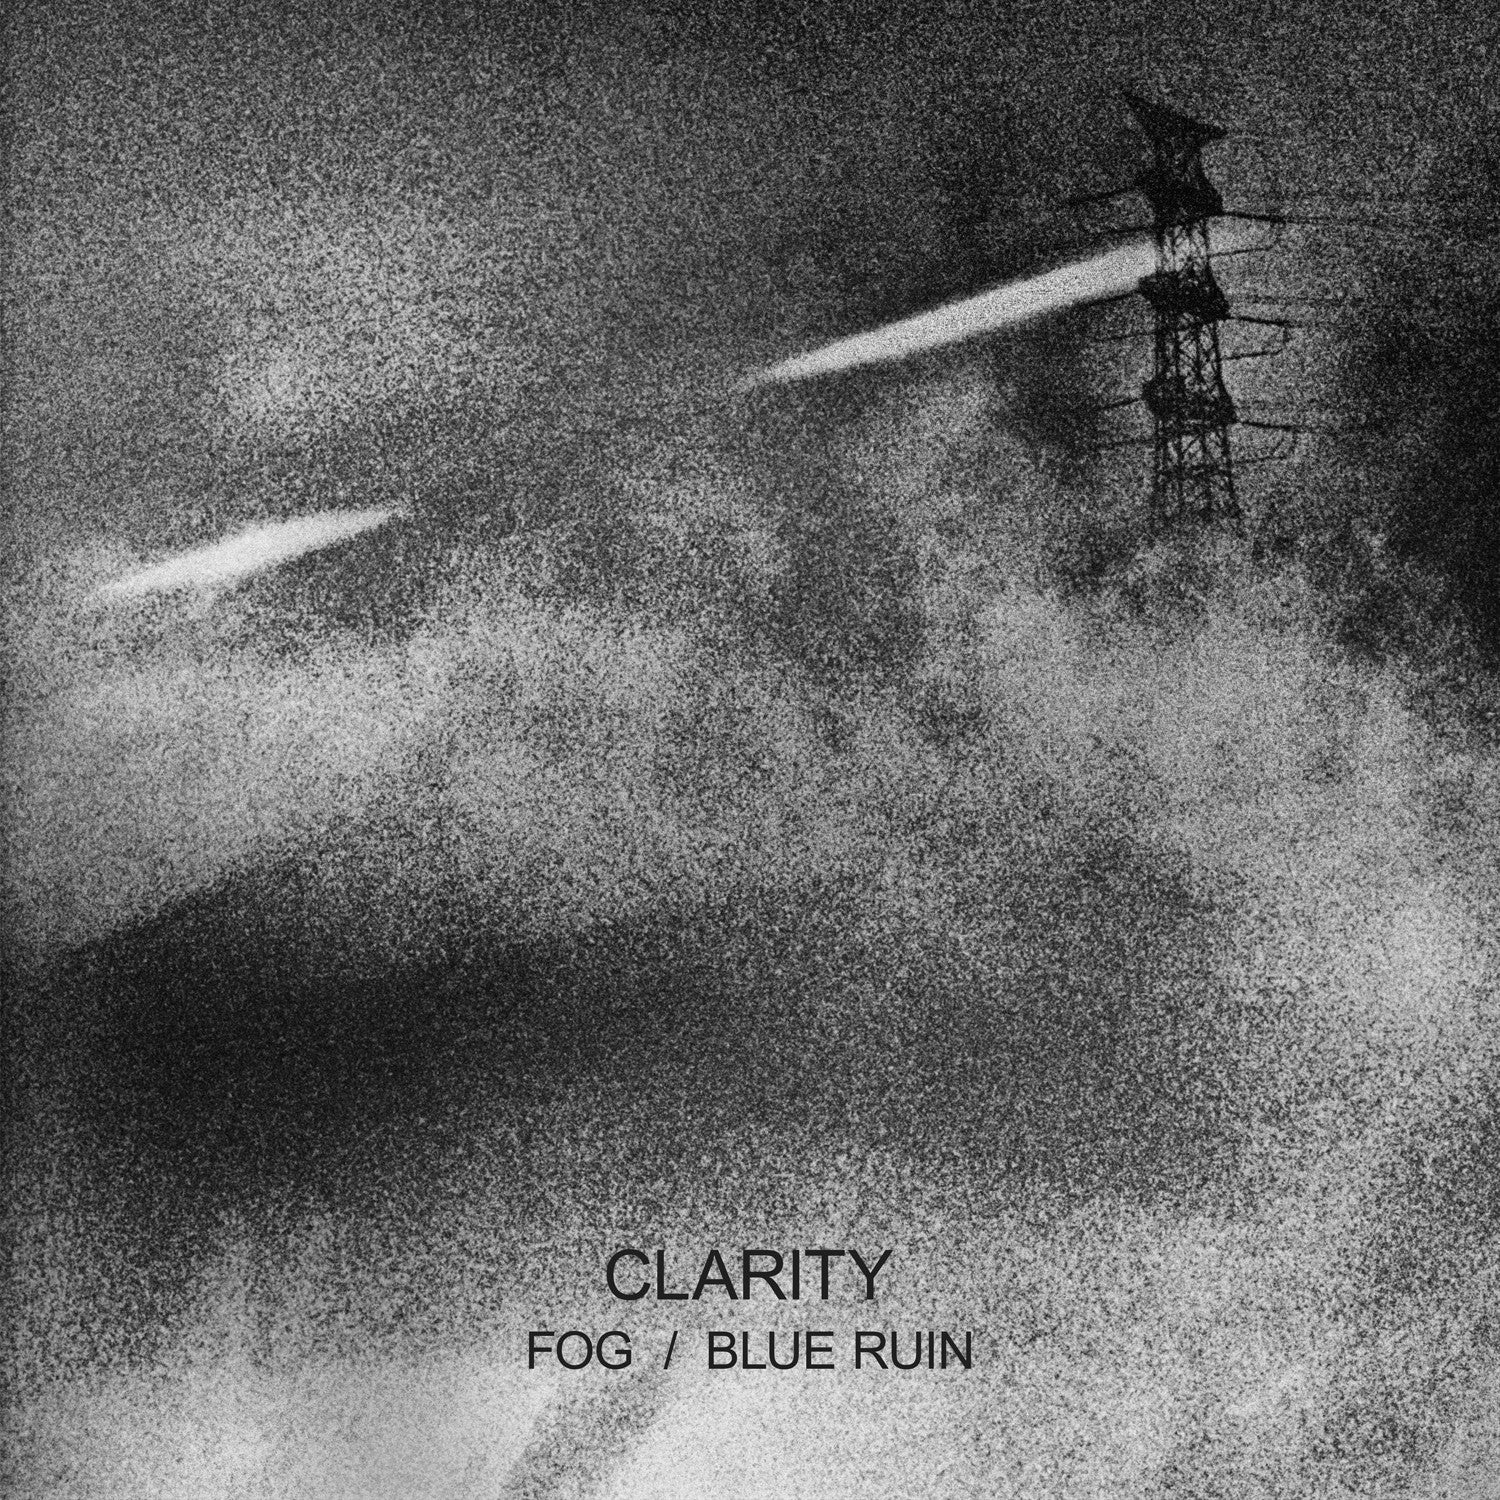 Clarity - Fog / Blue Ruin (Downloads)